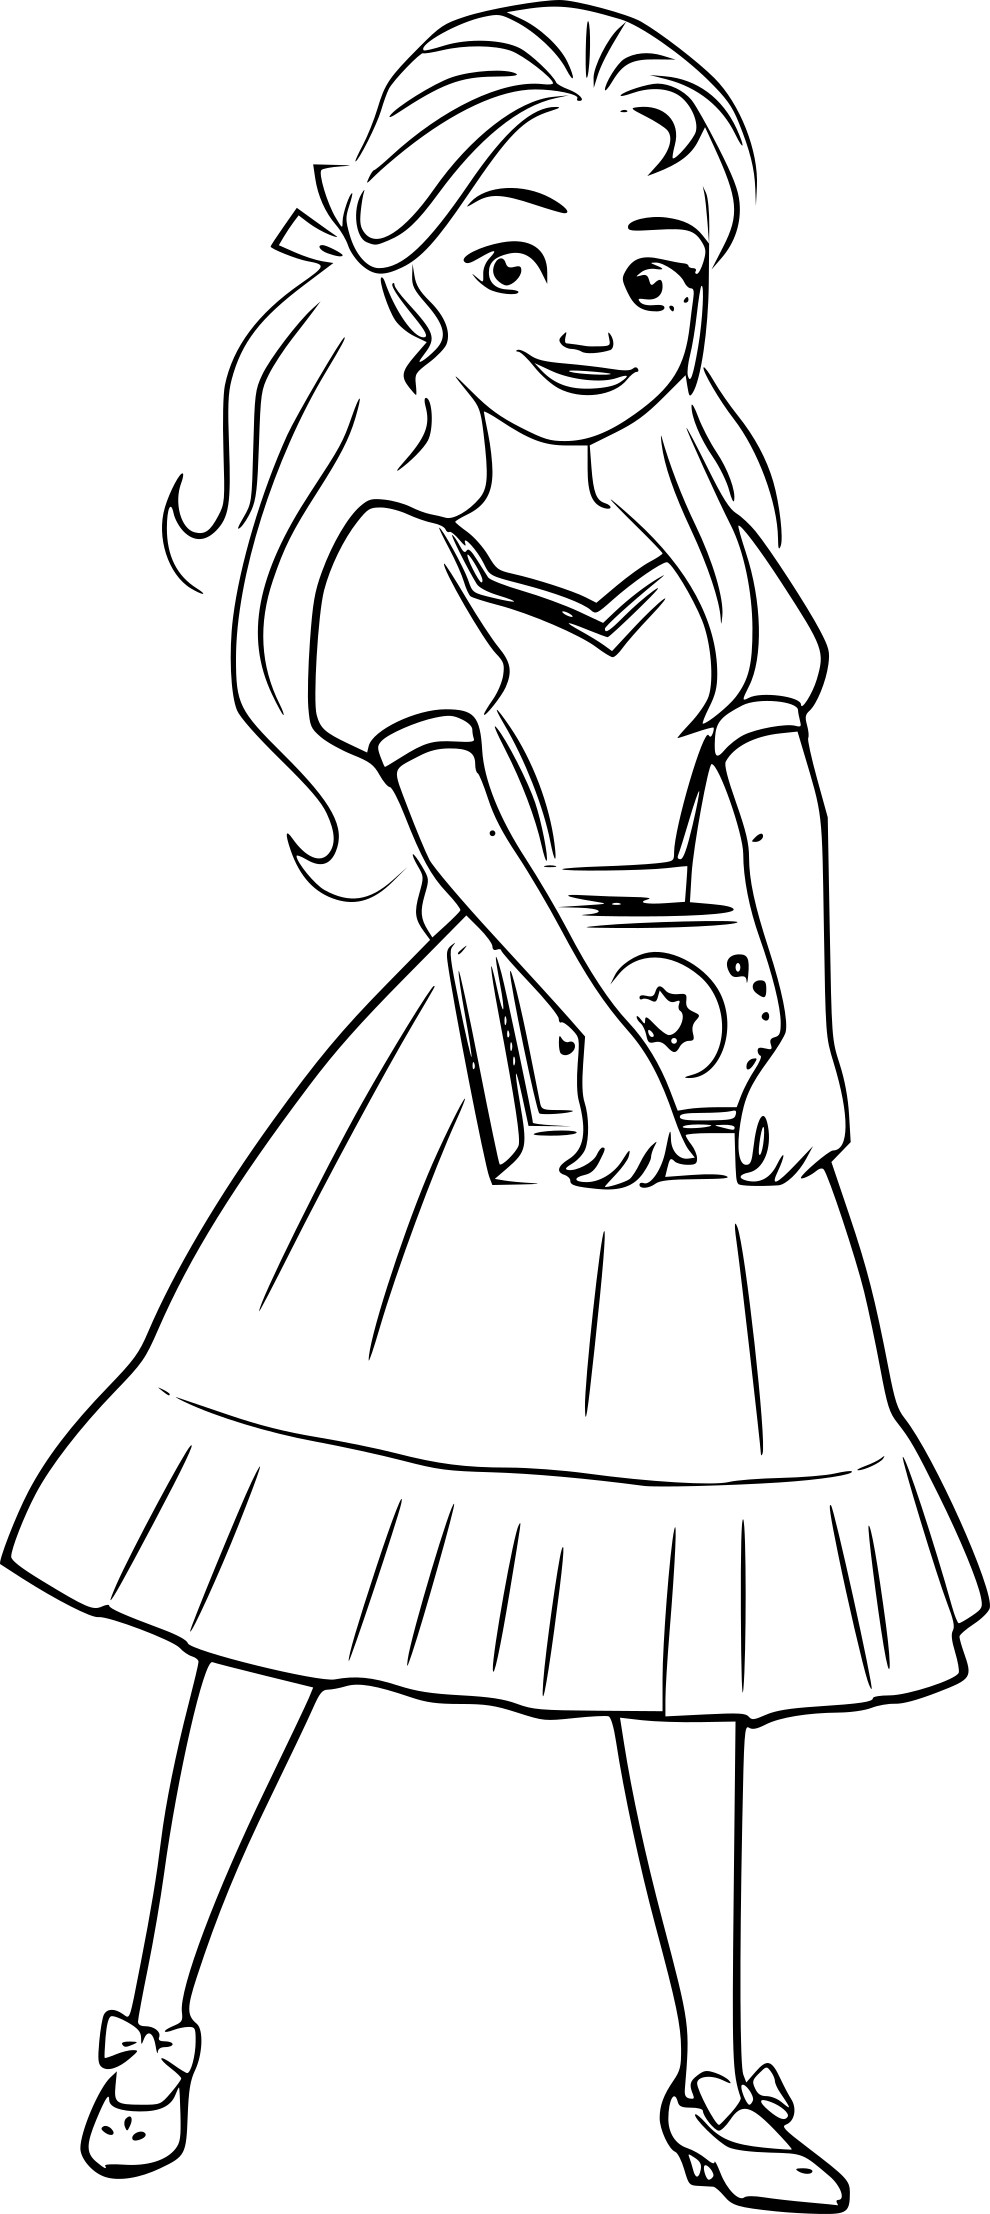 Coloriage princesse Isabel